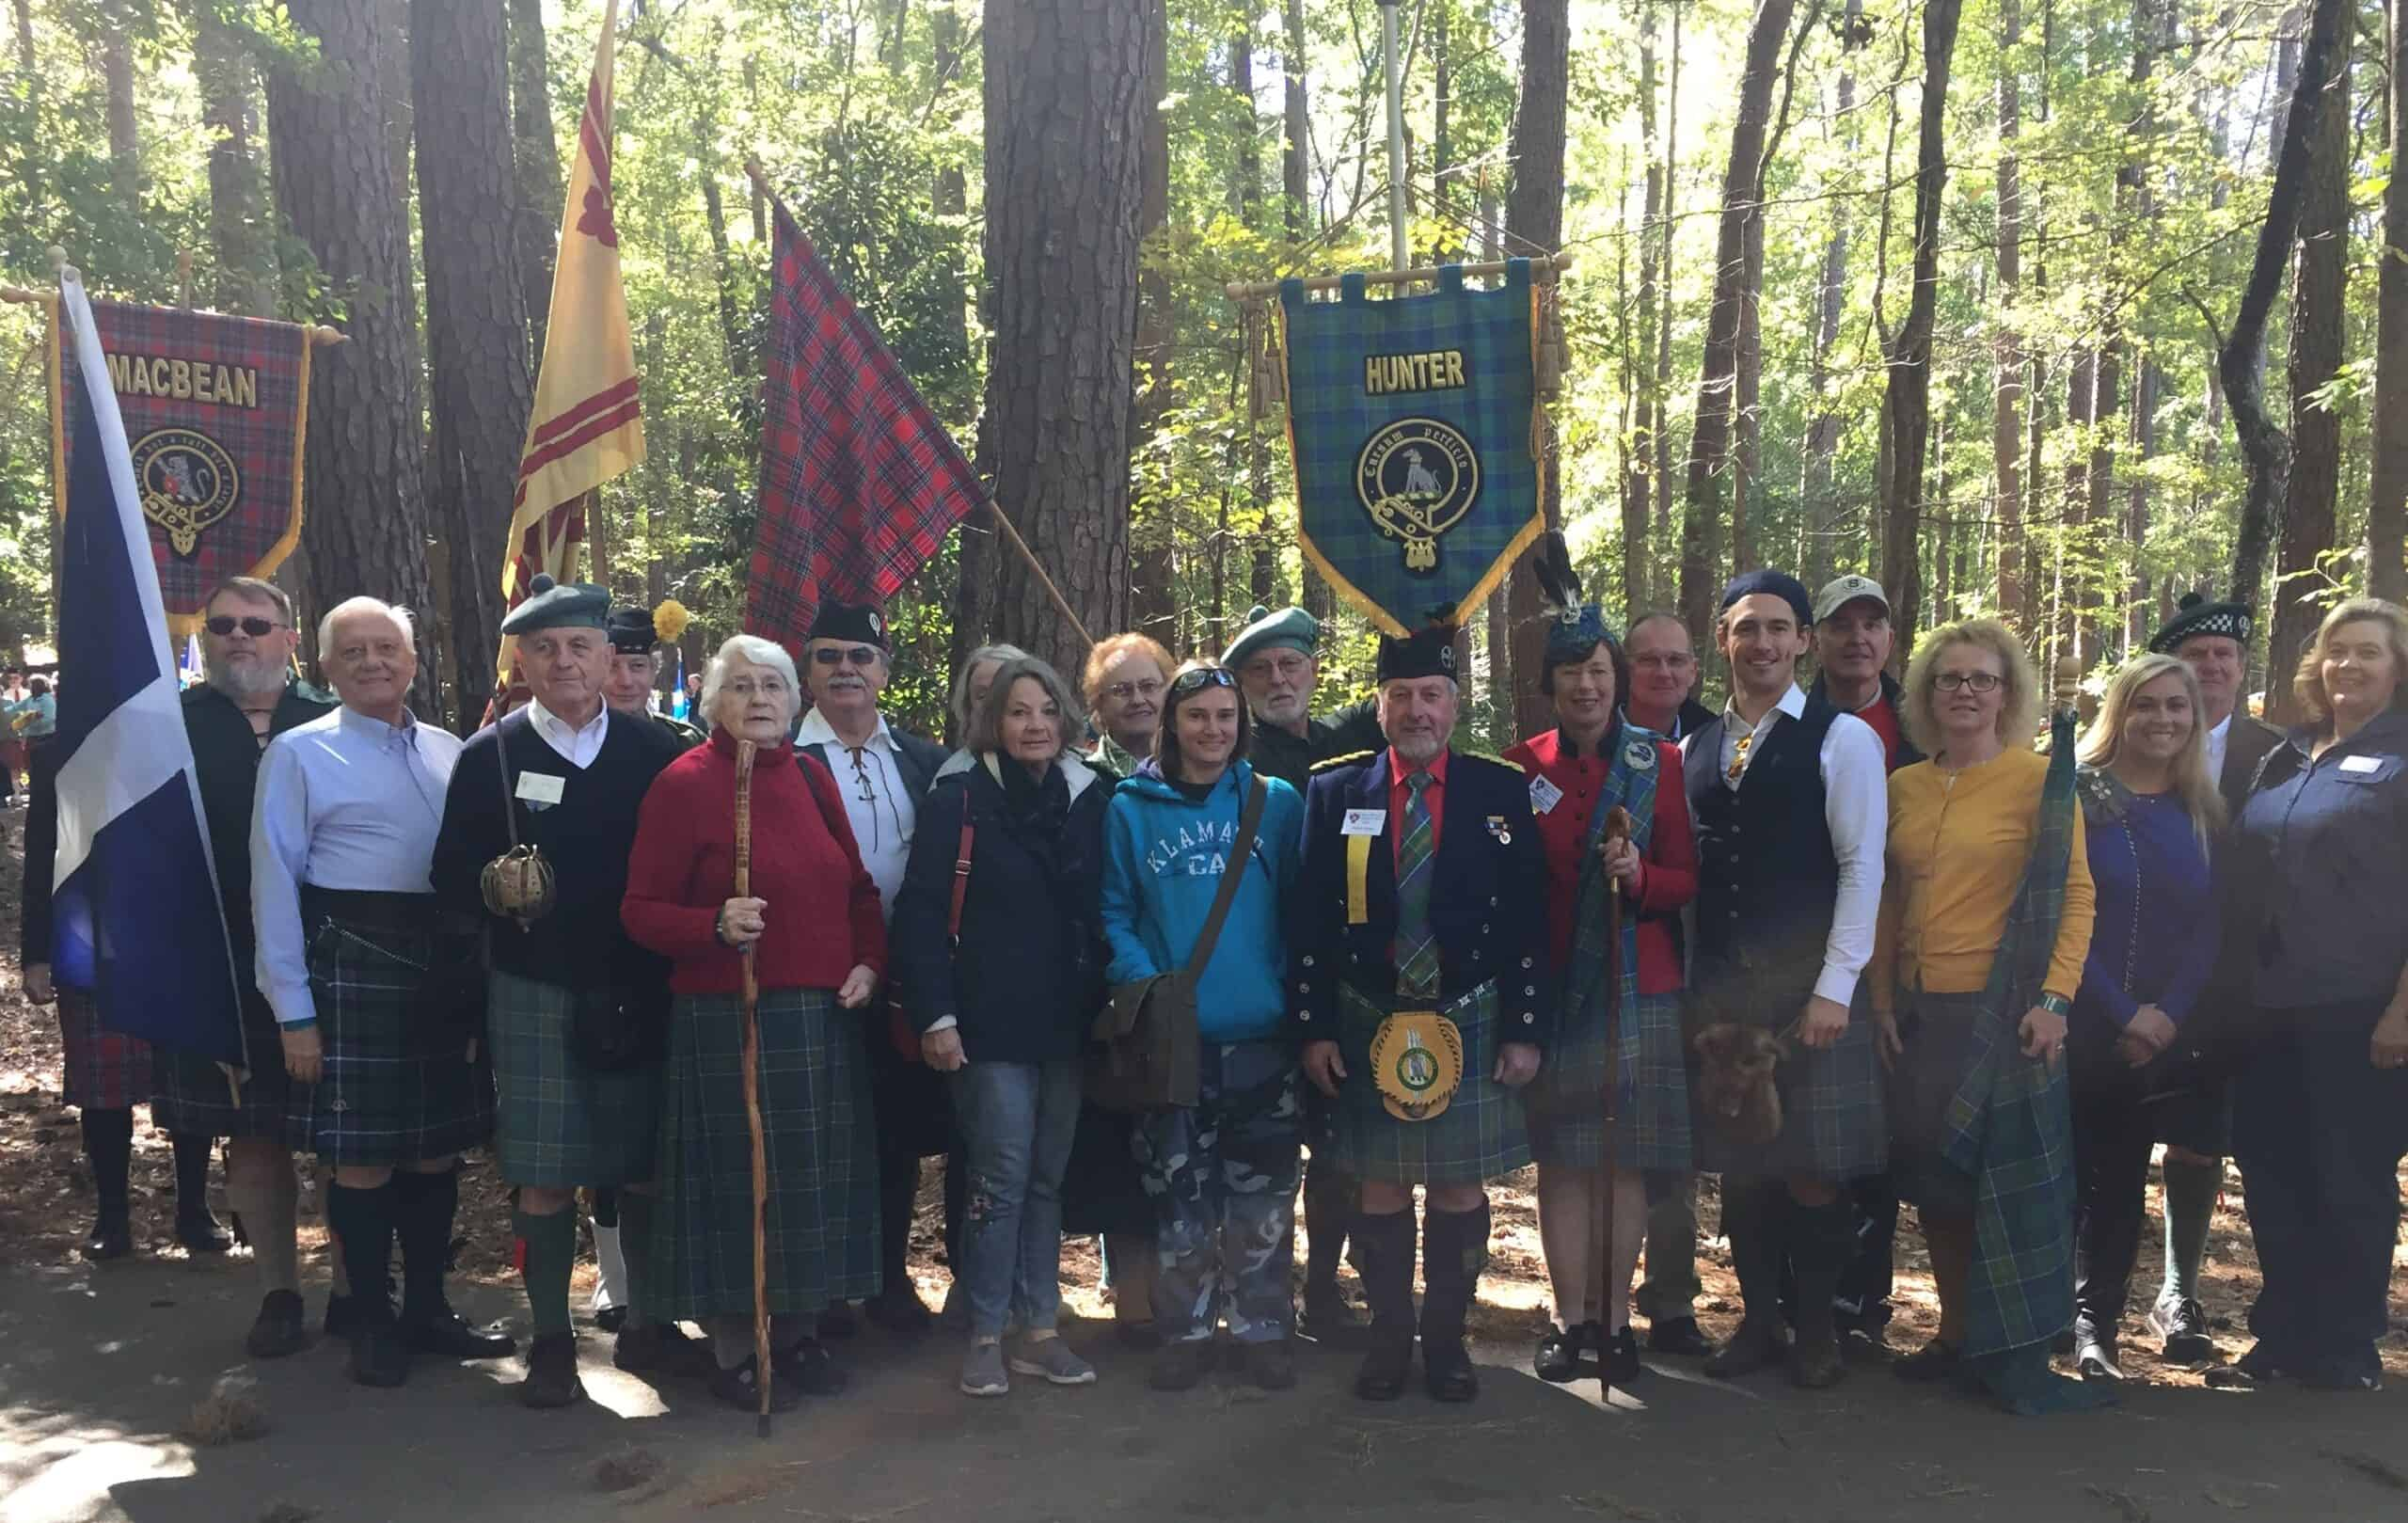 Volunteer -Clan Hunter Parade